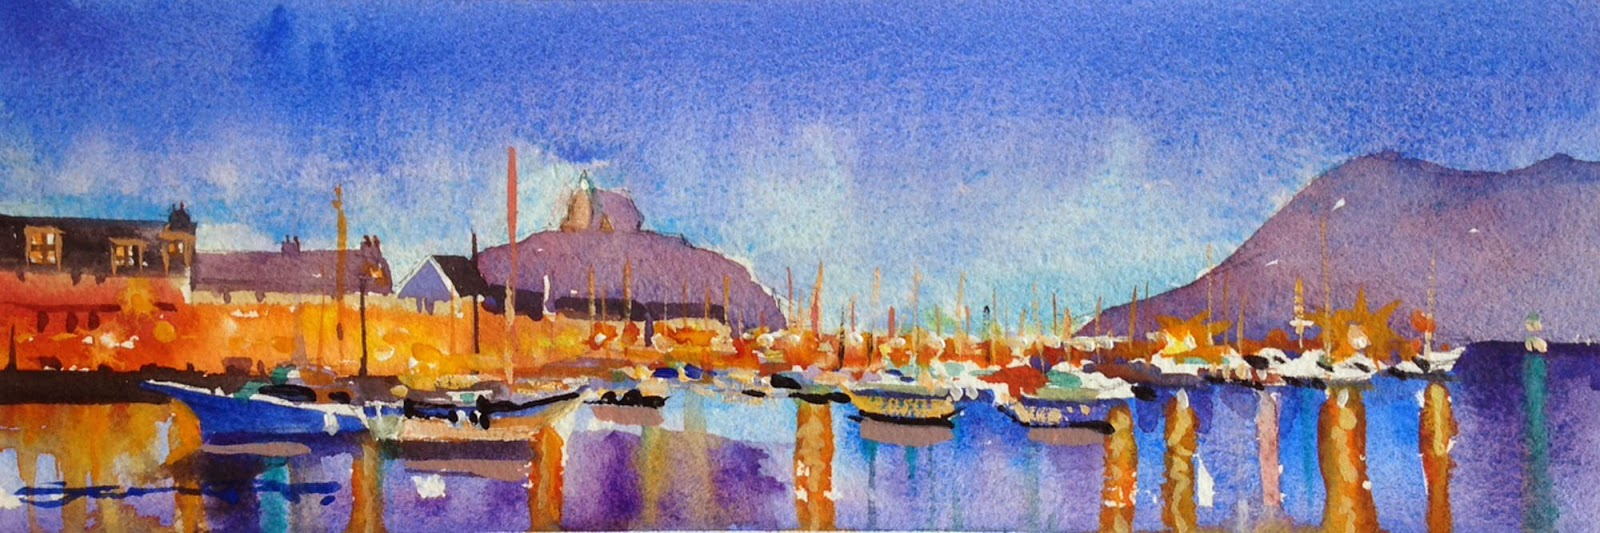 Ilfracombe harbour Devon watercolour painting by Woolacombe artist Steve PP.